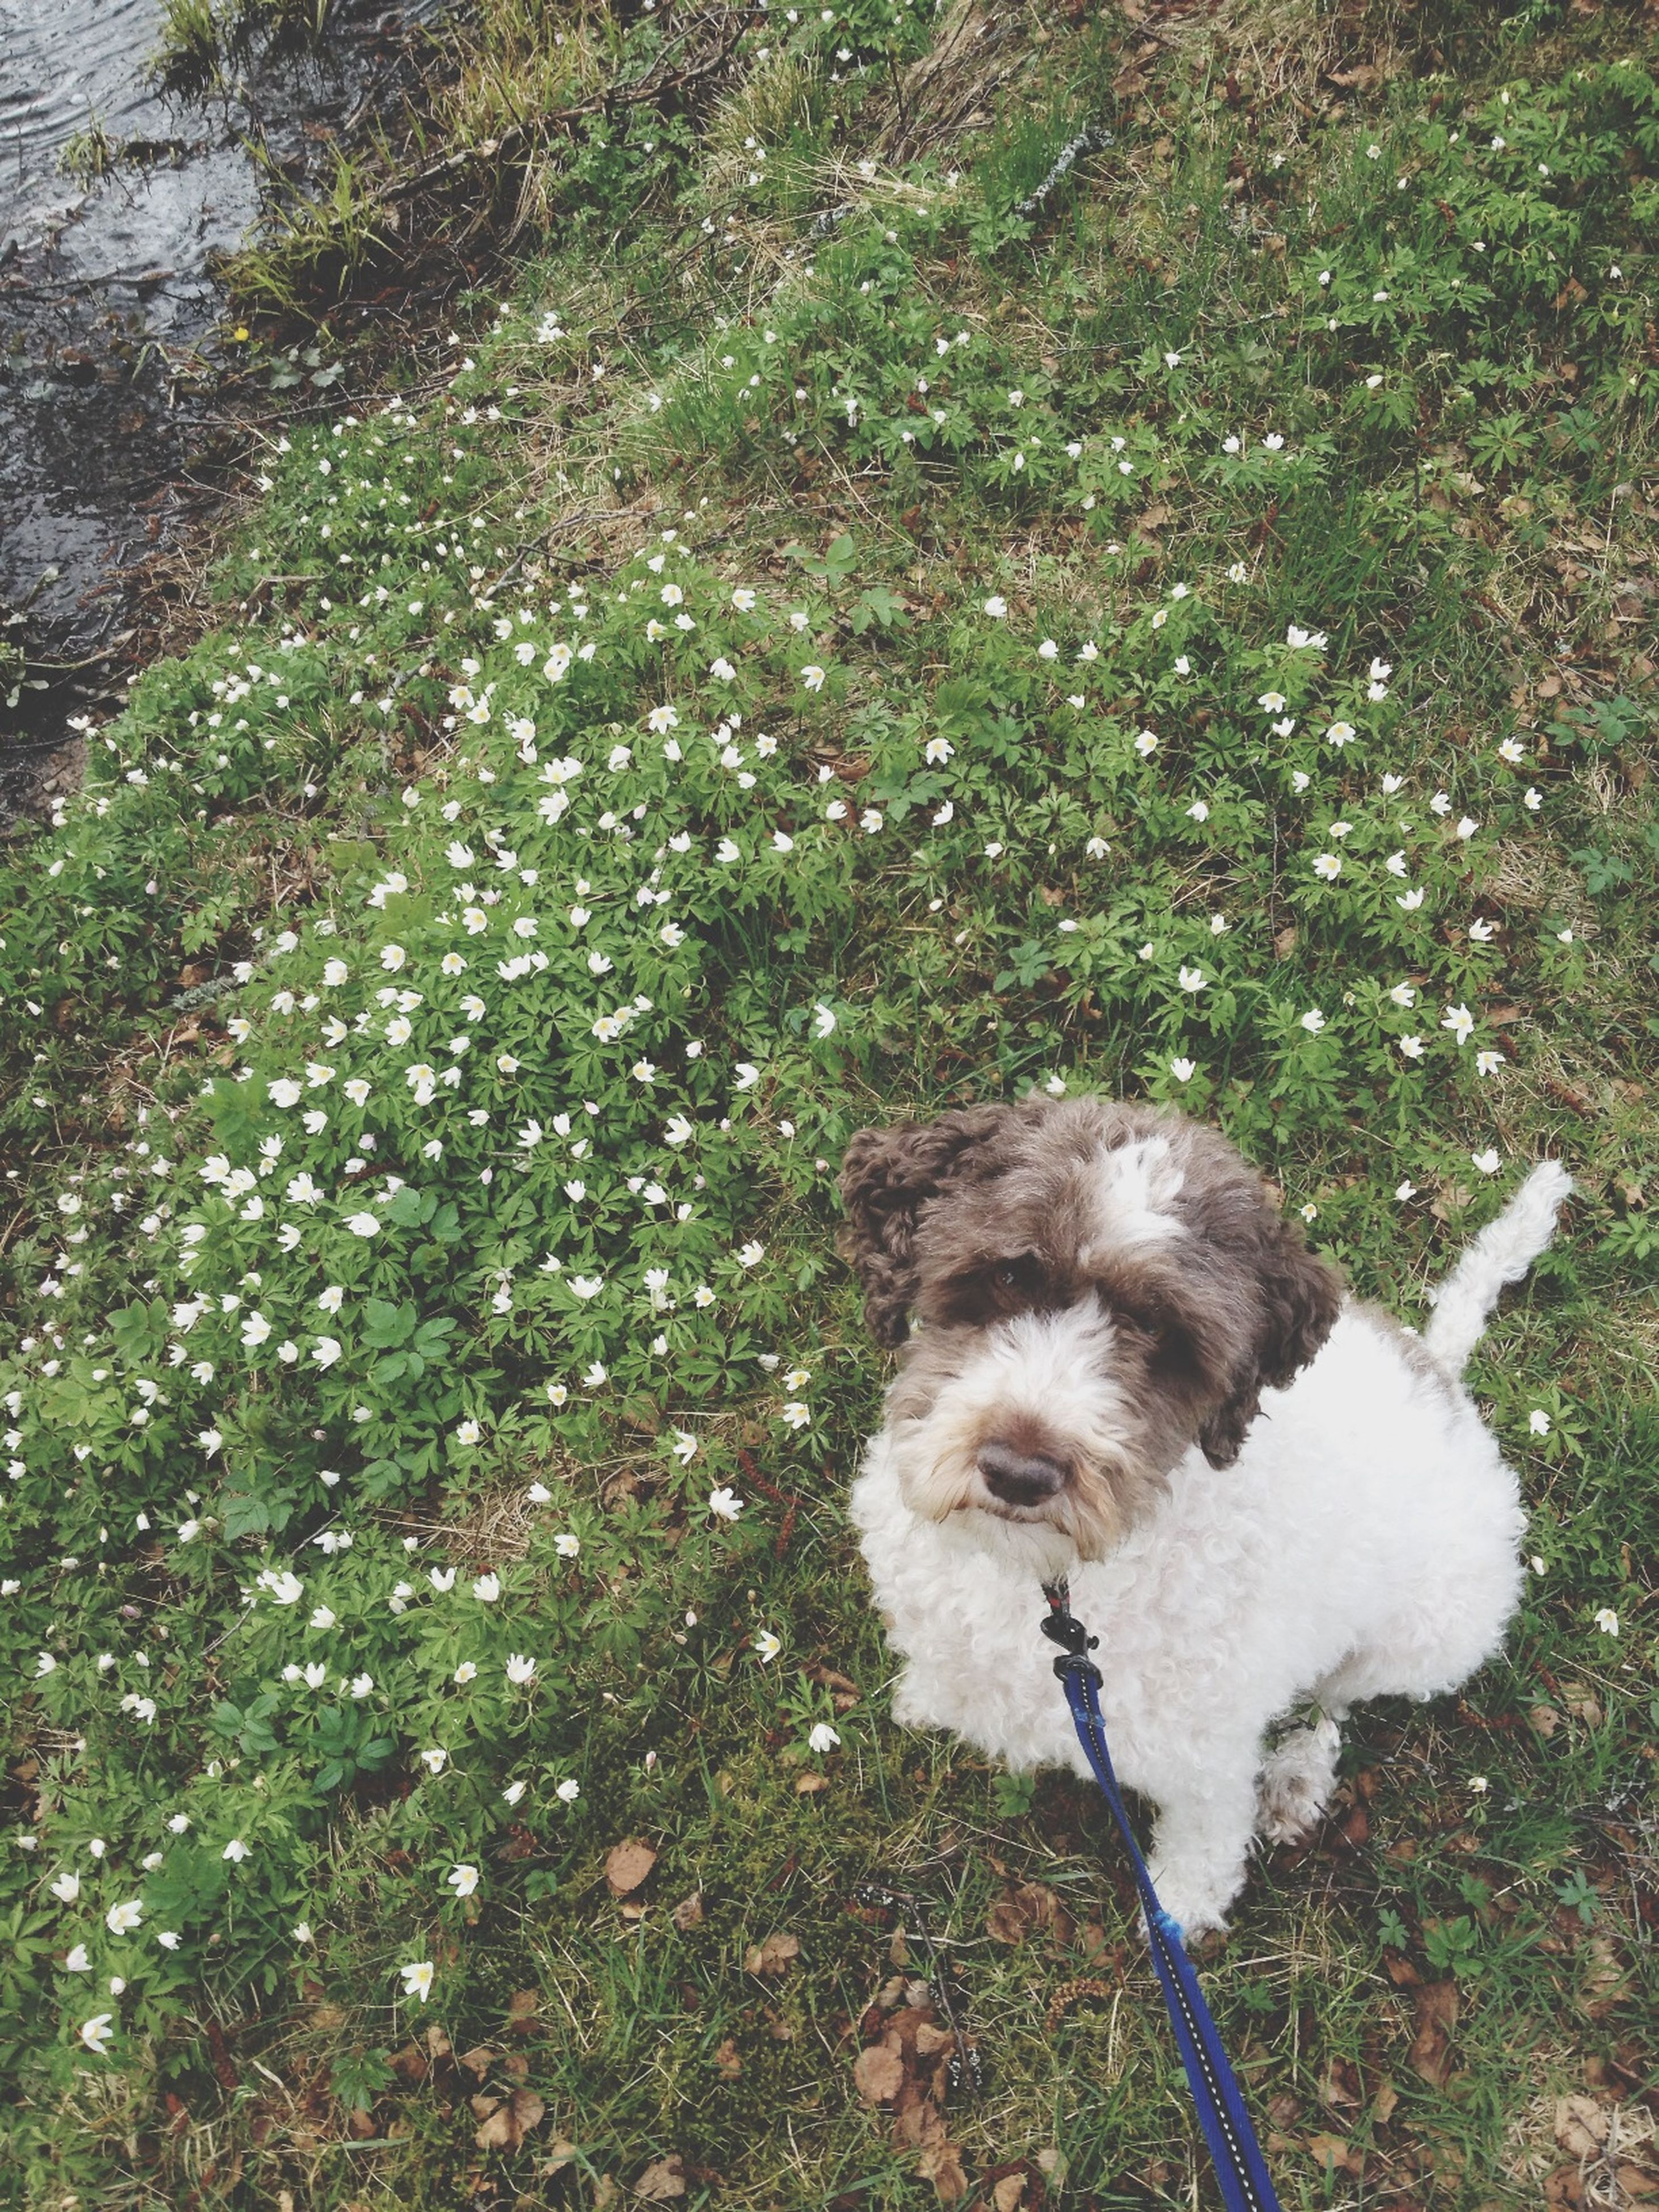 animal themes, domestic animals, mammal, dog, pets, one animal, grass, high angle view, white color, field, nature, day, grassy, plant, outdoors, no people, full length, growth, two animals, standing